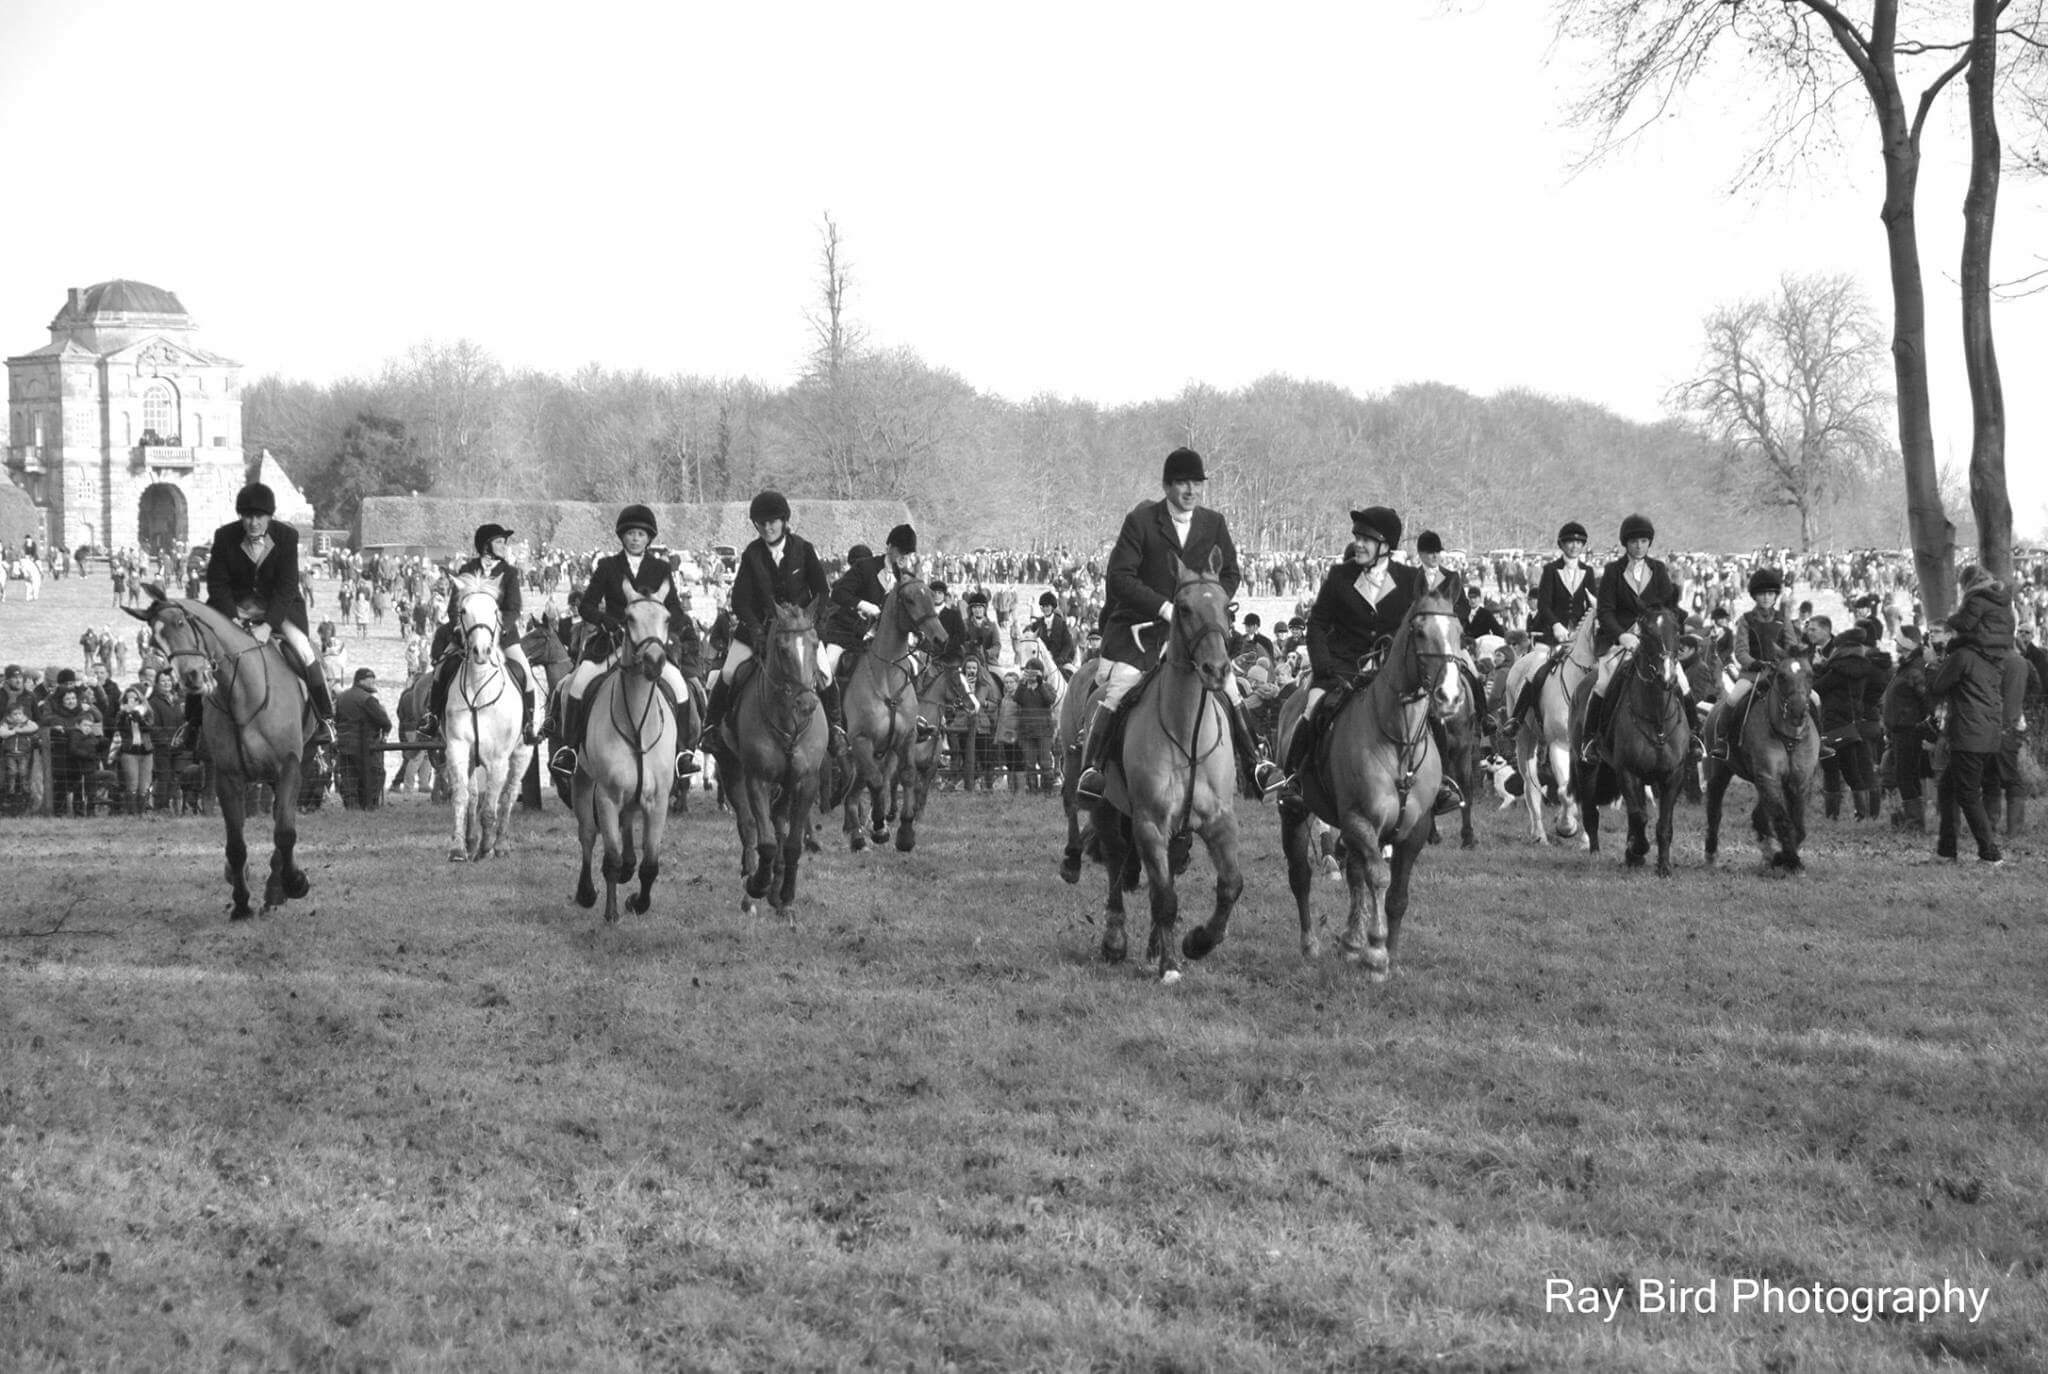 Beaufort Hunt Team Chase sponsored by The Equestrian Notice Board